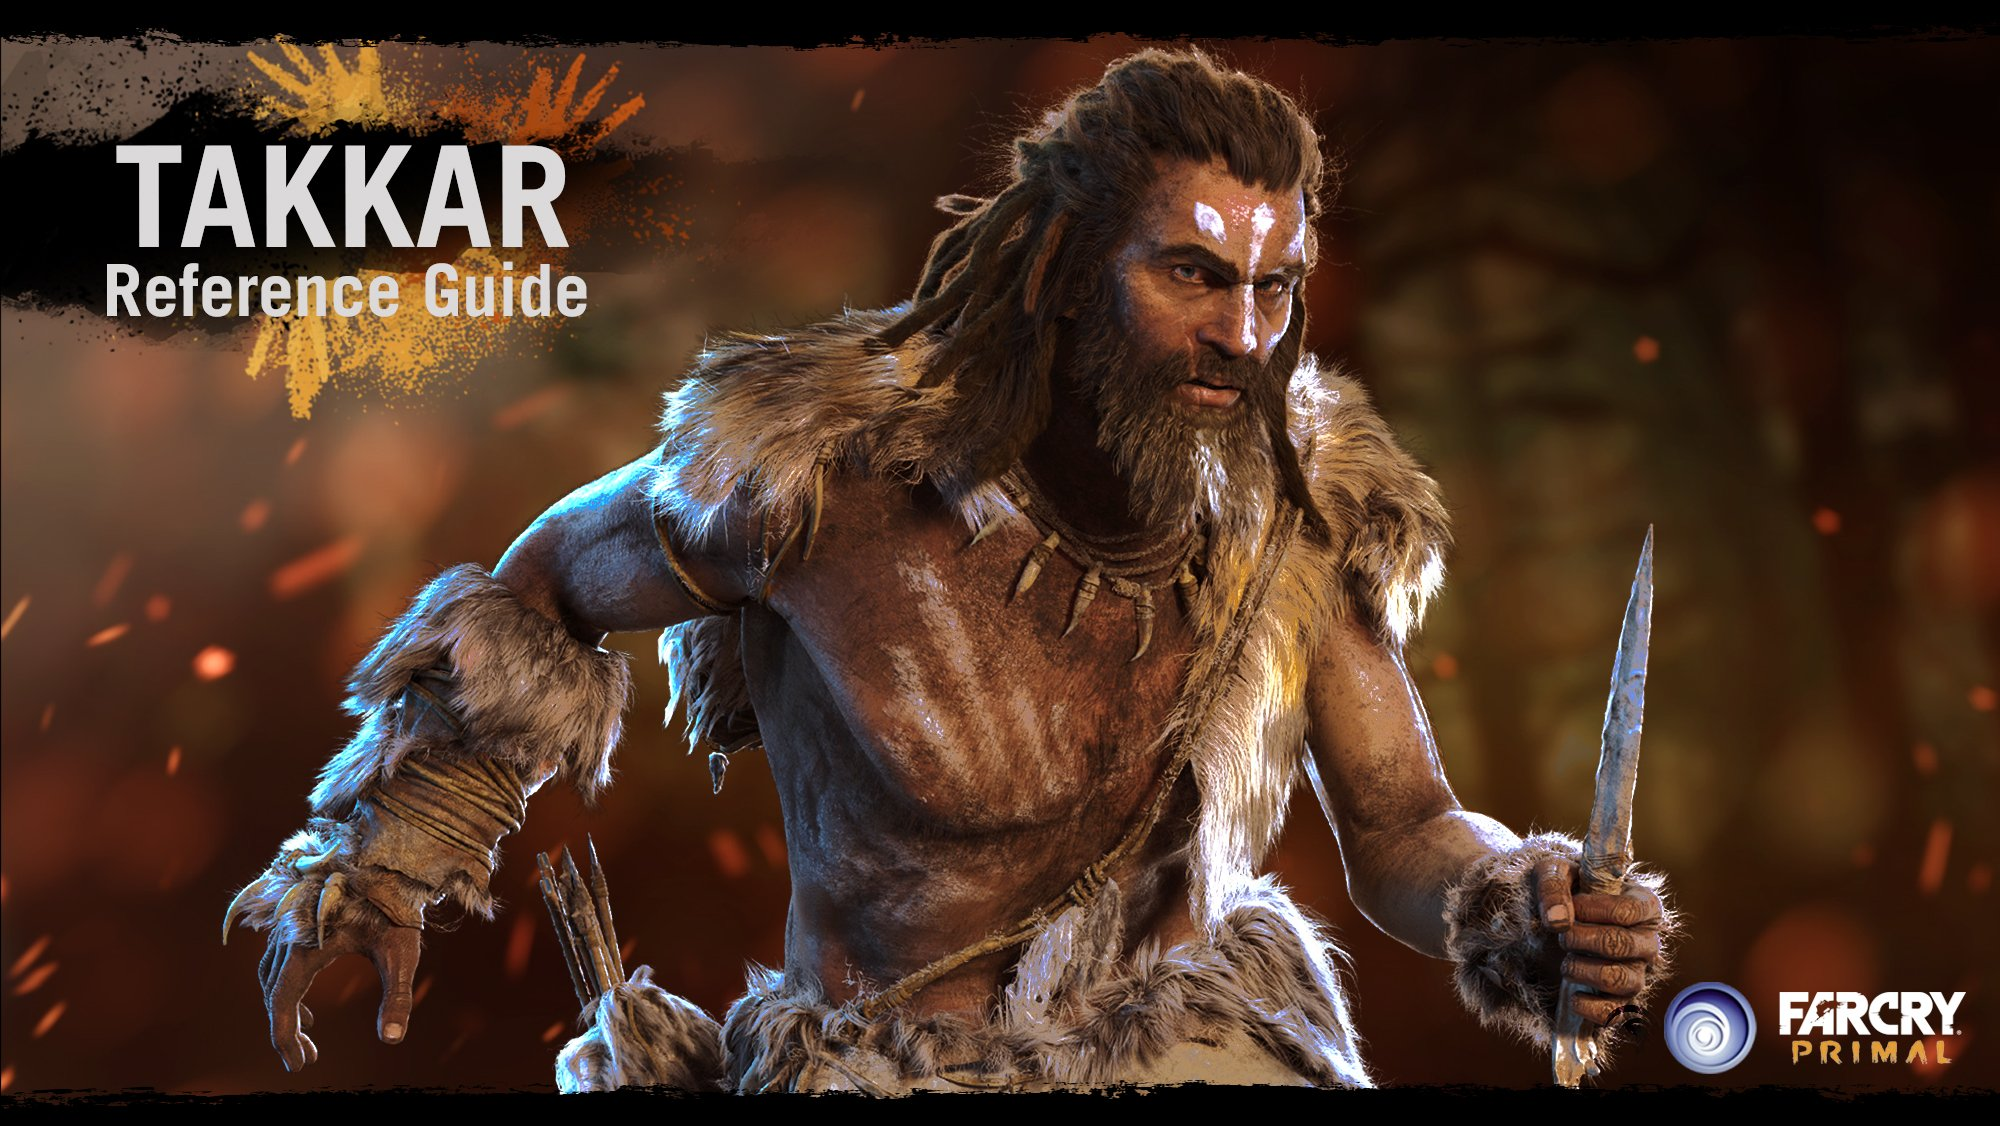 Far Cry 6 On Twitter Want To Cosplay As Takkar Of The Wenja A New Reference Guide Is Available Download Here Https T Co 4xtotji8ho Https T Co W0ntymp2xf